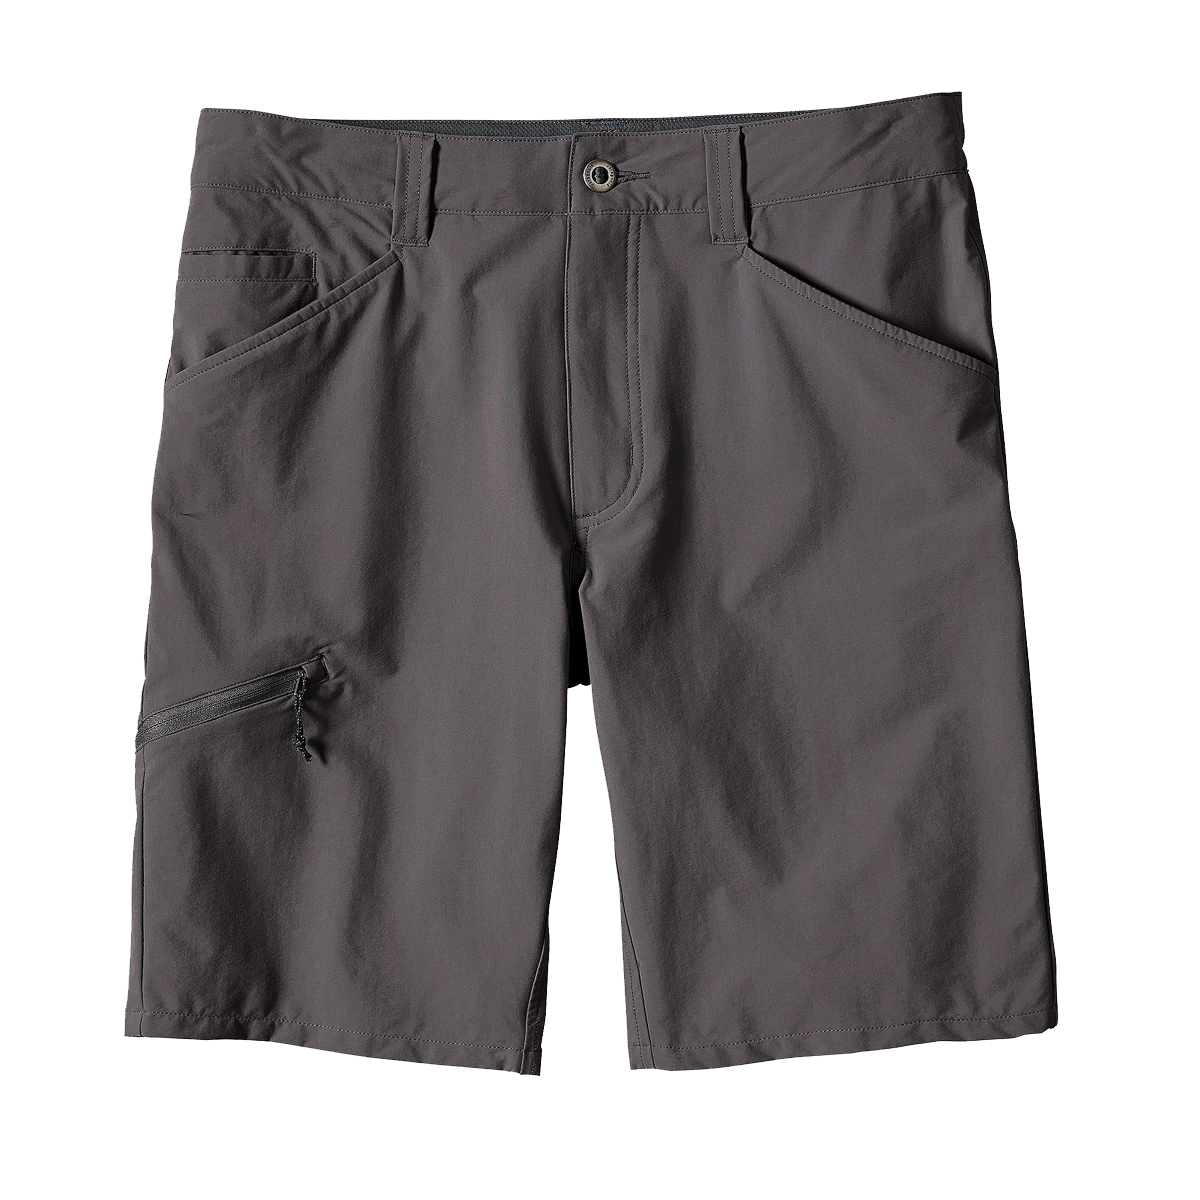 PATAGONIA MEN'S QUANDARY SHORTS - 10 IN. (57826)